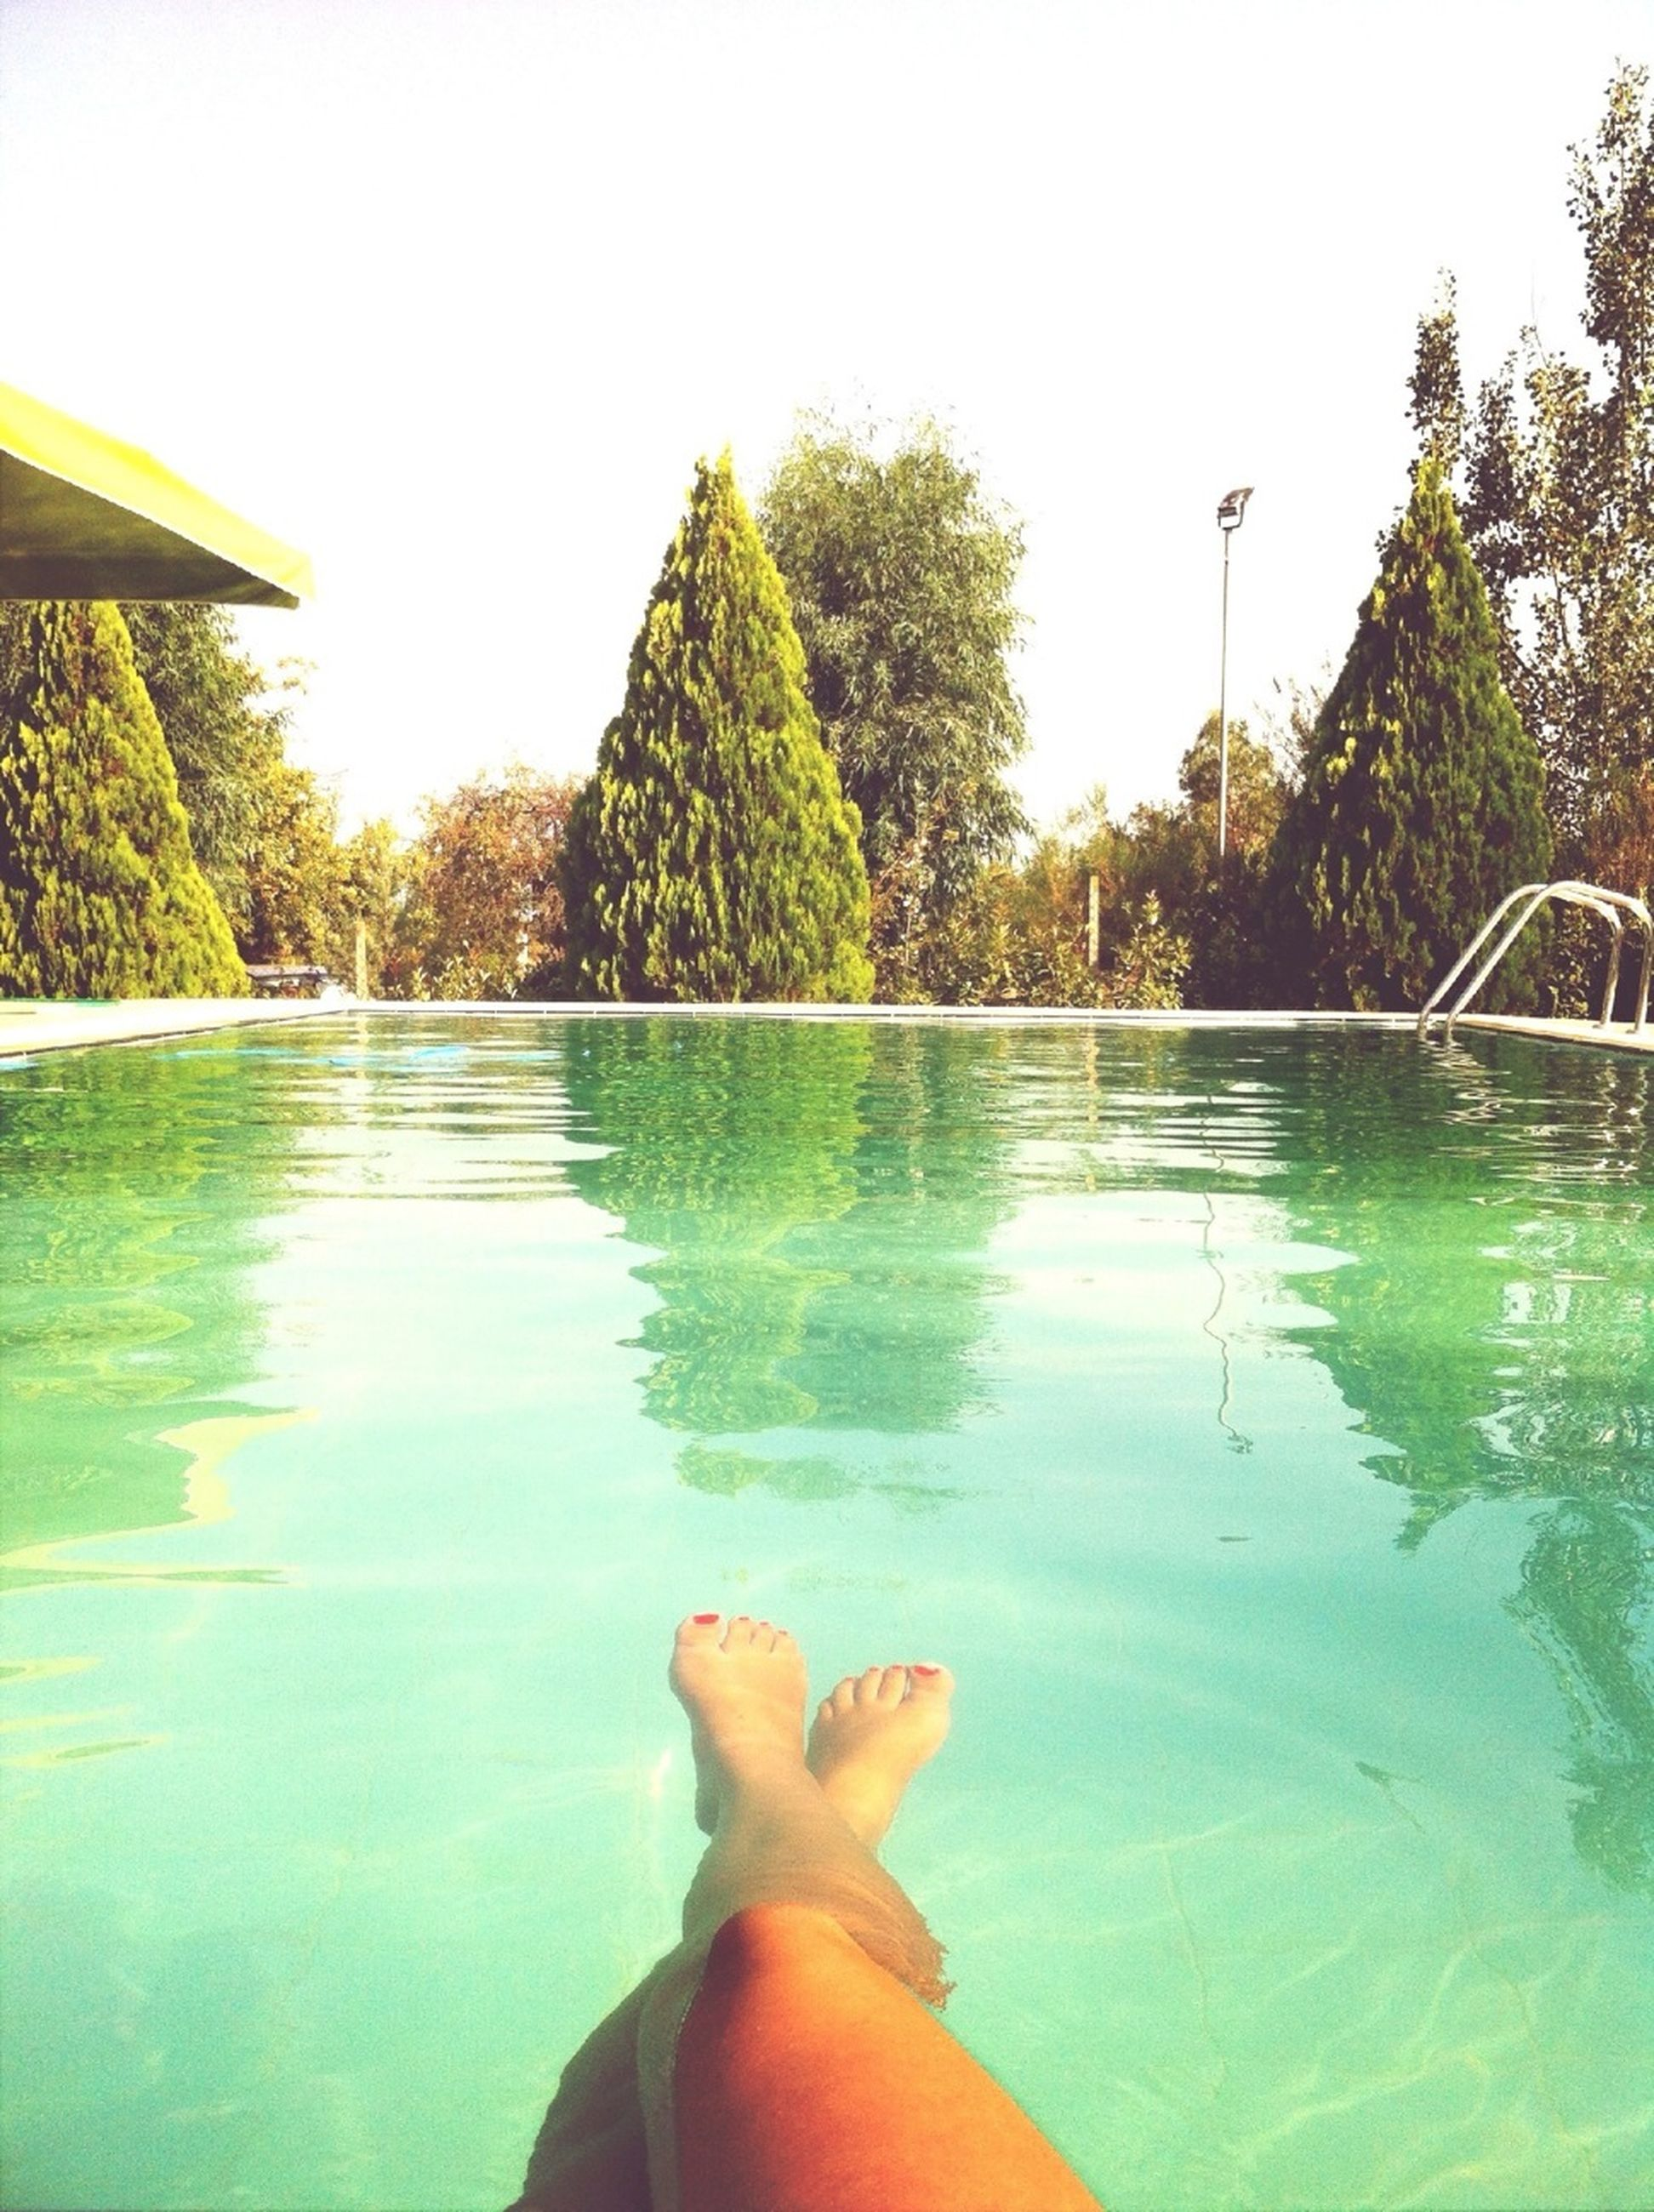 water, personal perspective, person, low section, tree, leisure activity, swimming pool, lifestyles, barefoot, clear sky, unrecognizable person, sunlight, human foot, part of, tranquility, relaxation, nature